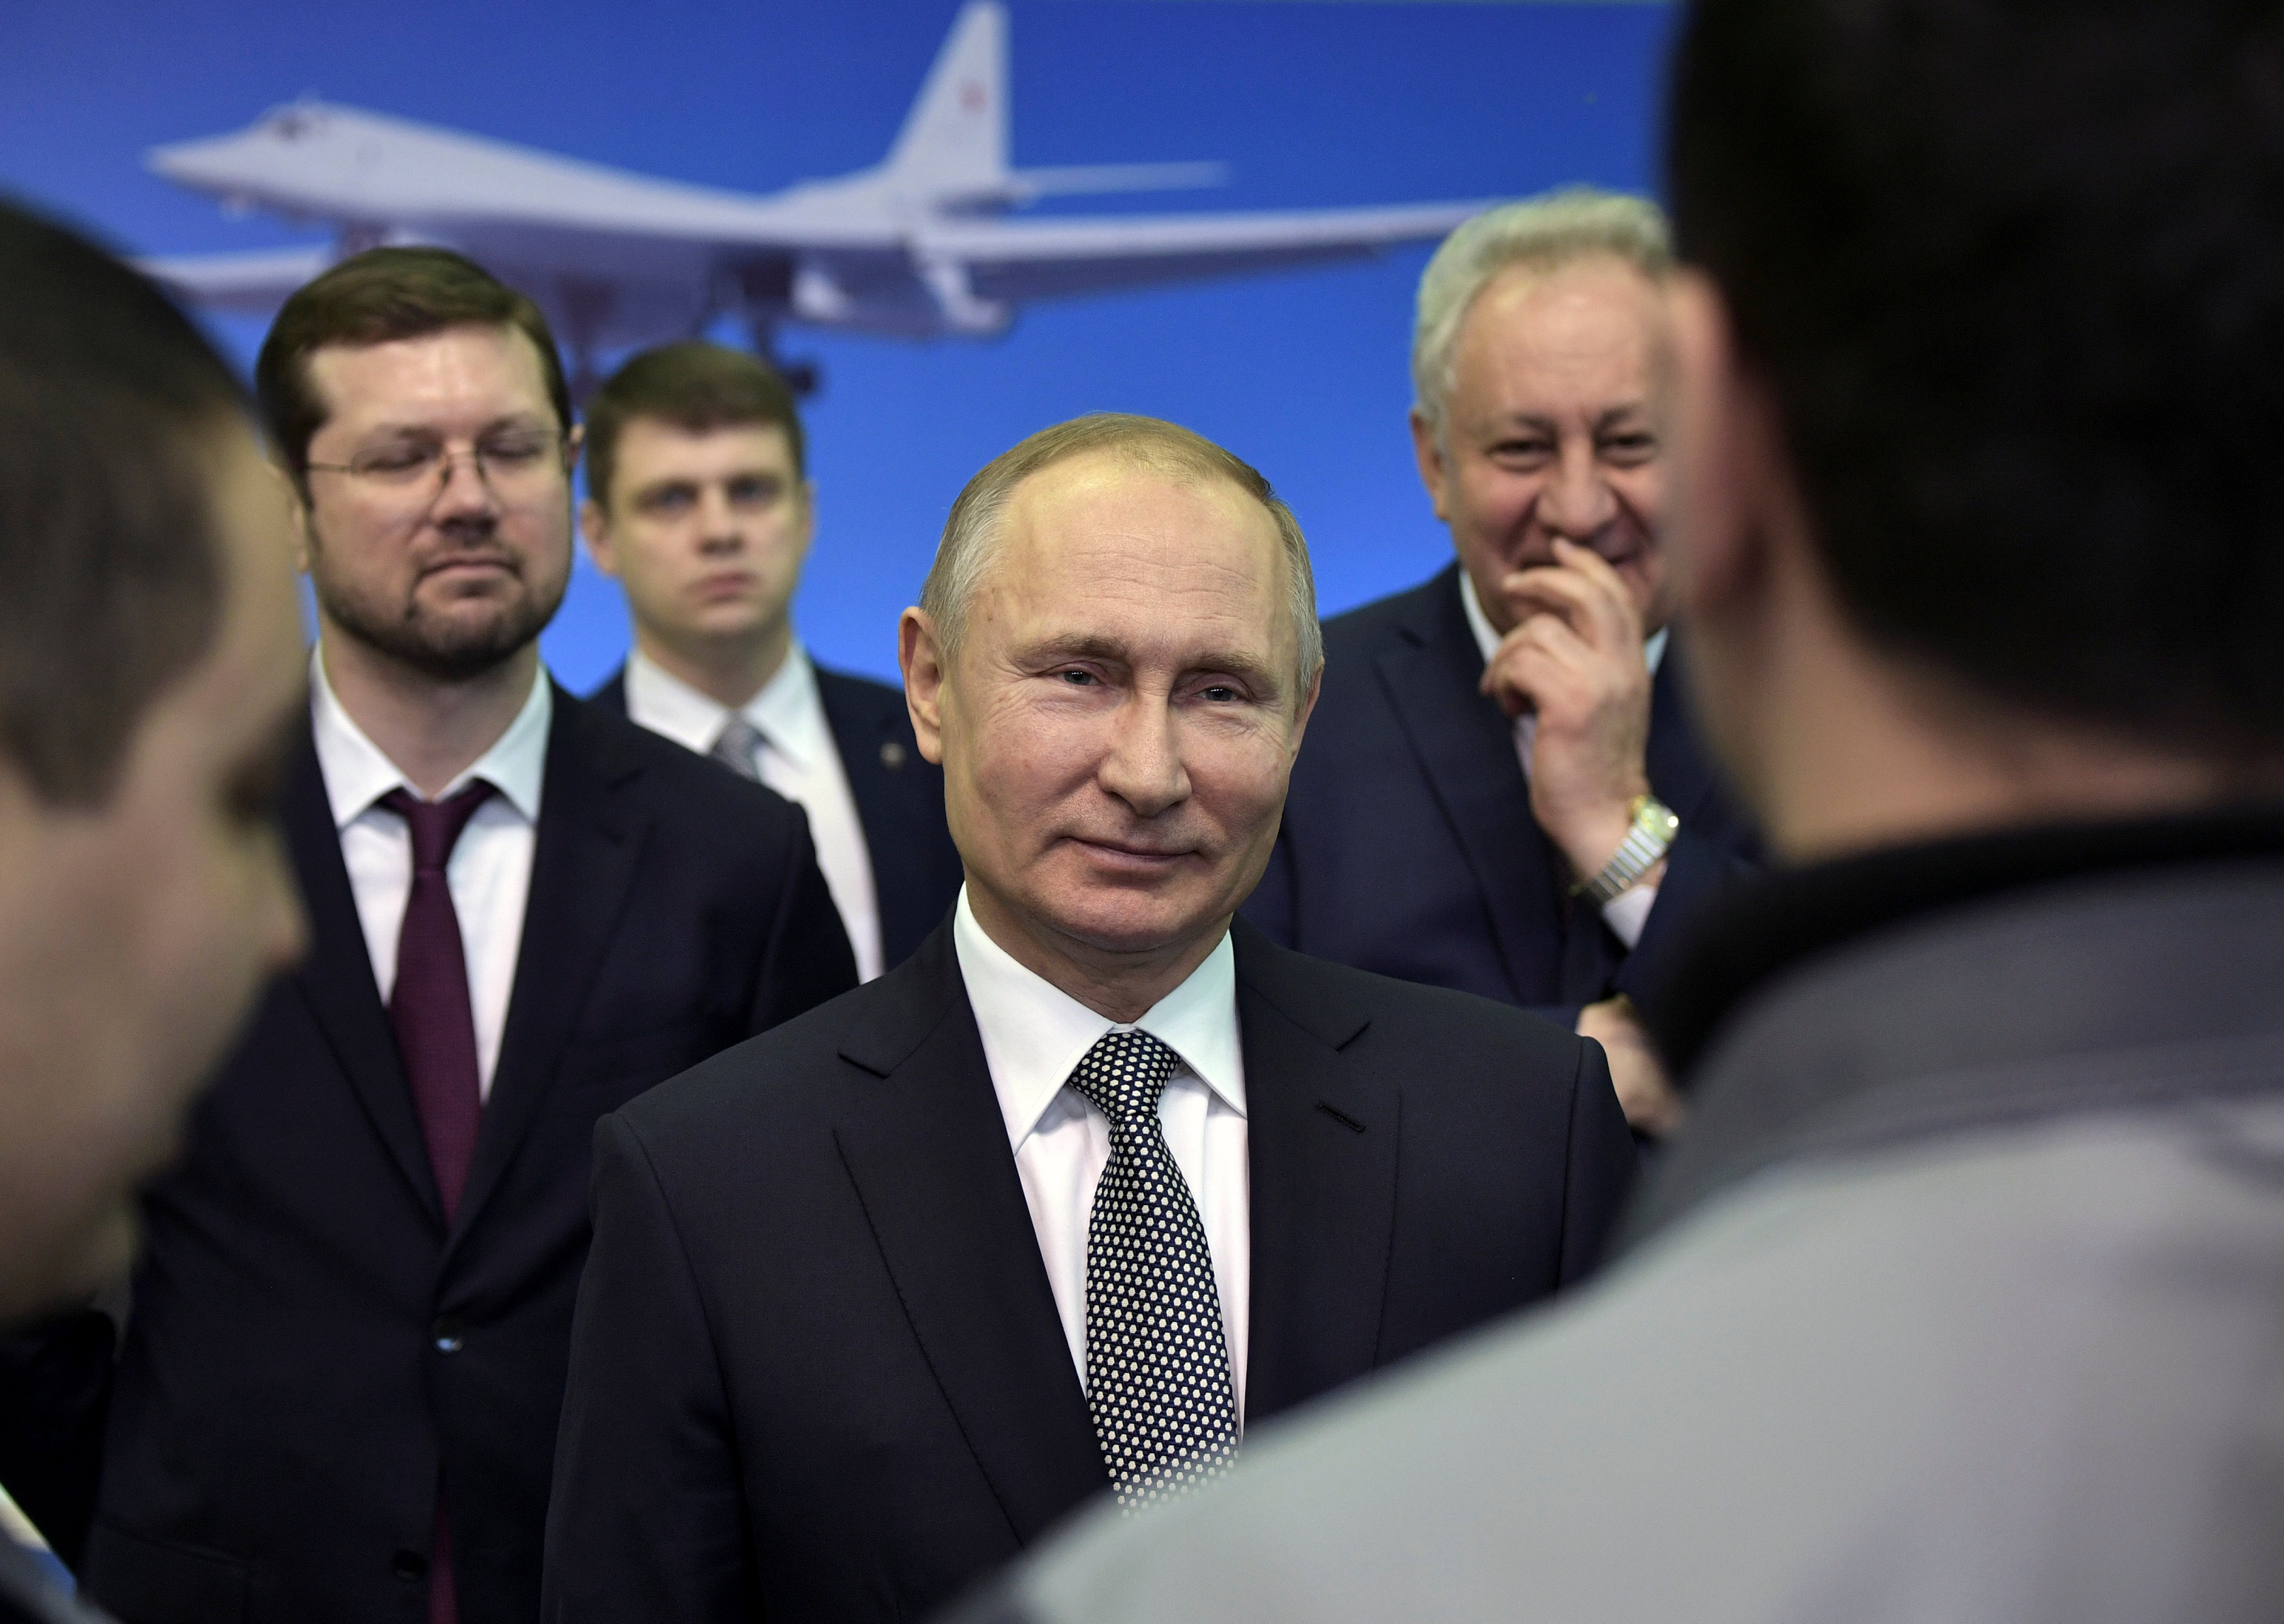 Russian President Vladimir Putin meets with employees during a visit to the Gorbunov Aviation factory in Kazan, Russia January 25, 2018. Sputnik/Alexei Nikolsky/Kremlin via